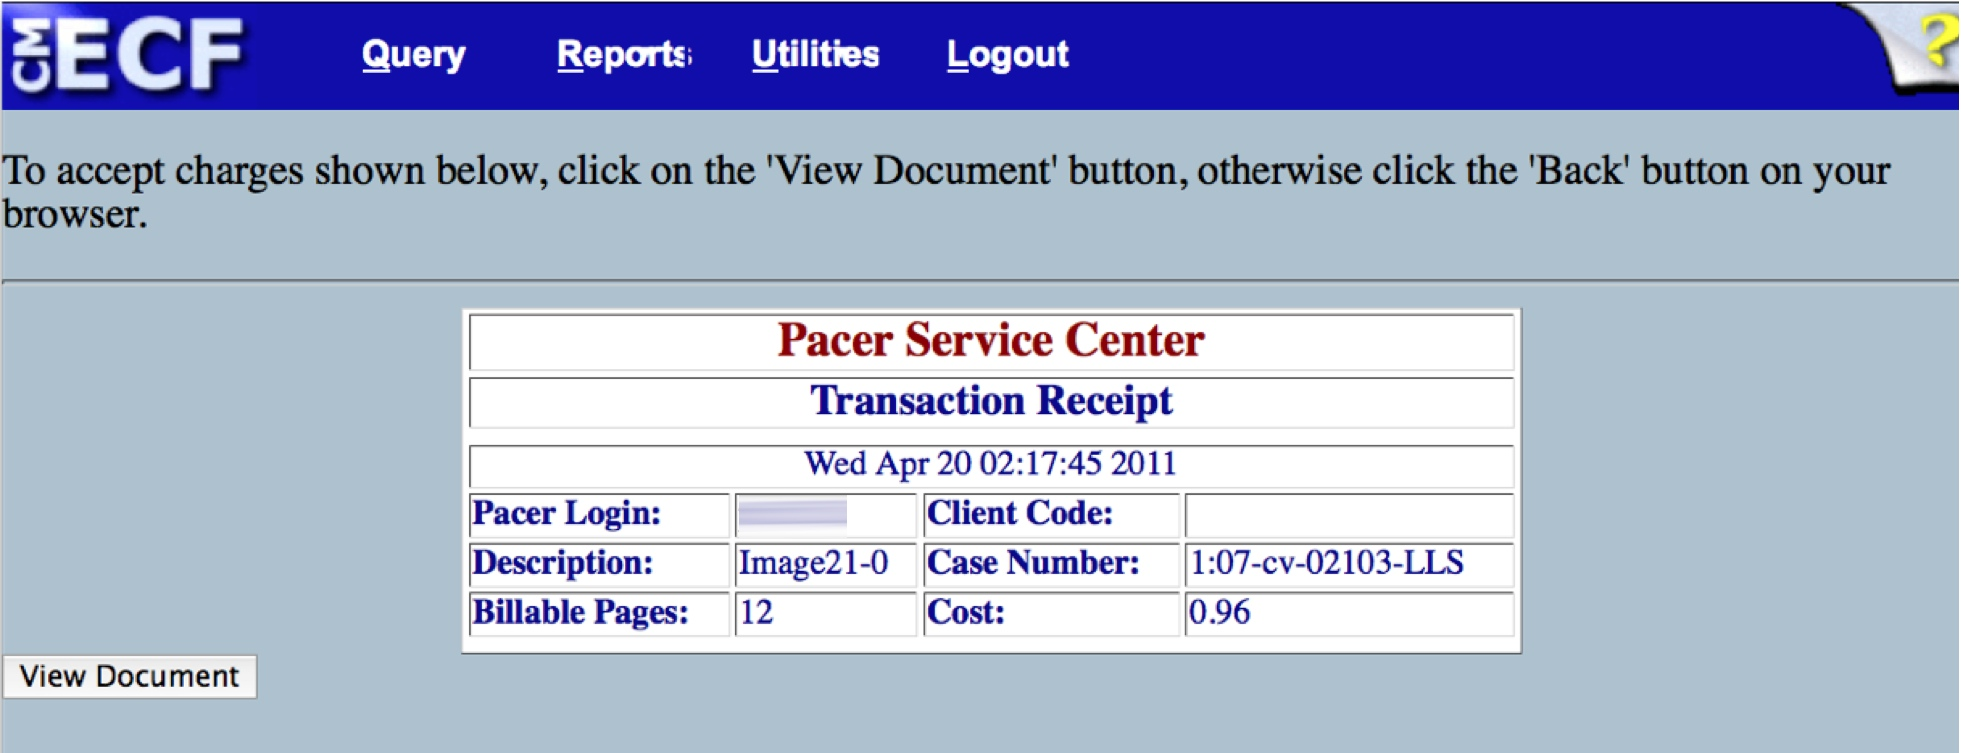 PACER purchase receipt